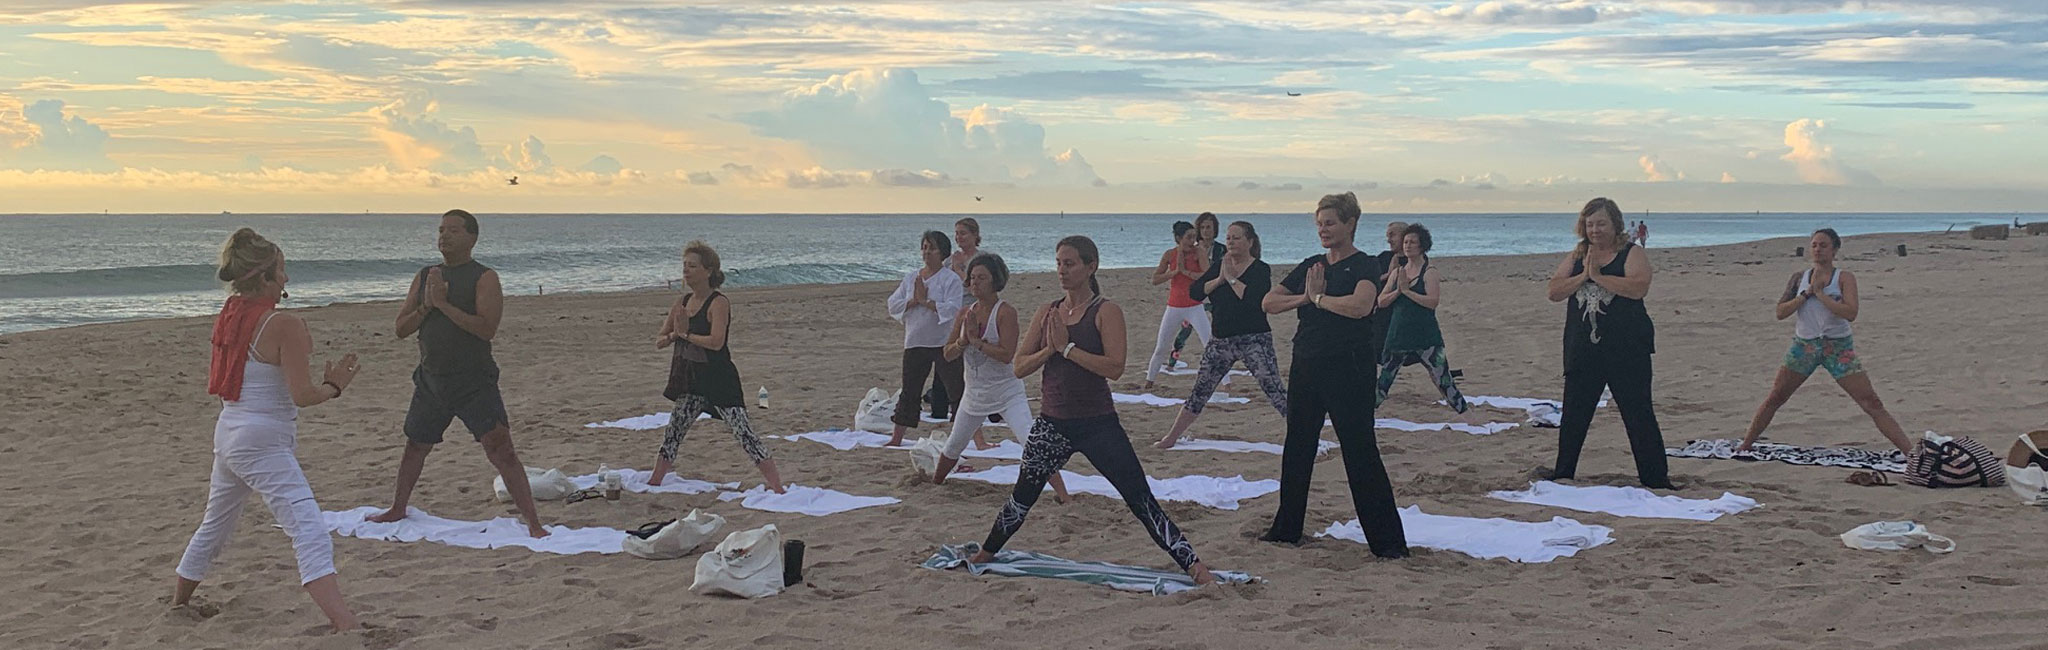 View of yoga class on the beach copying their instructor